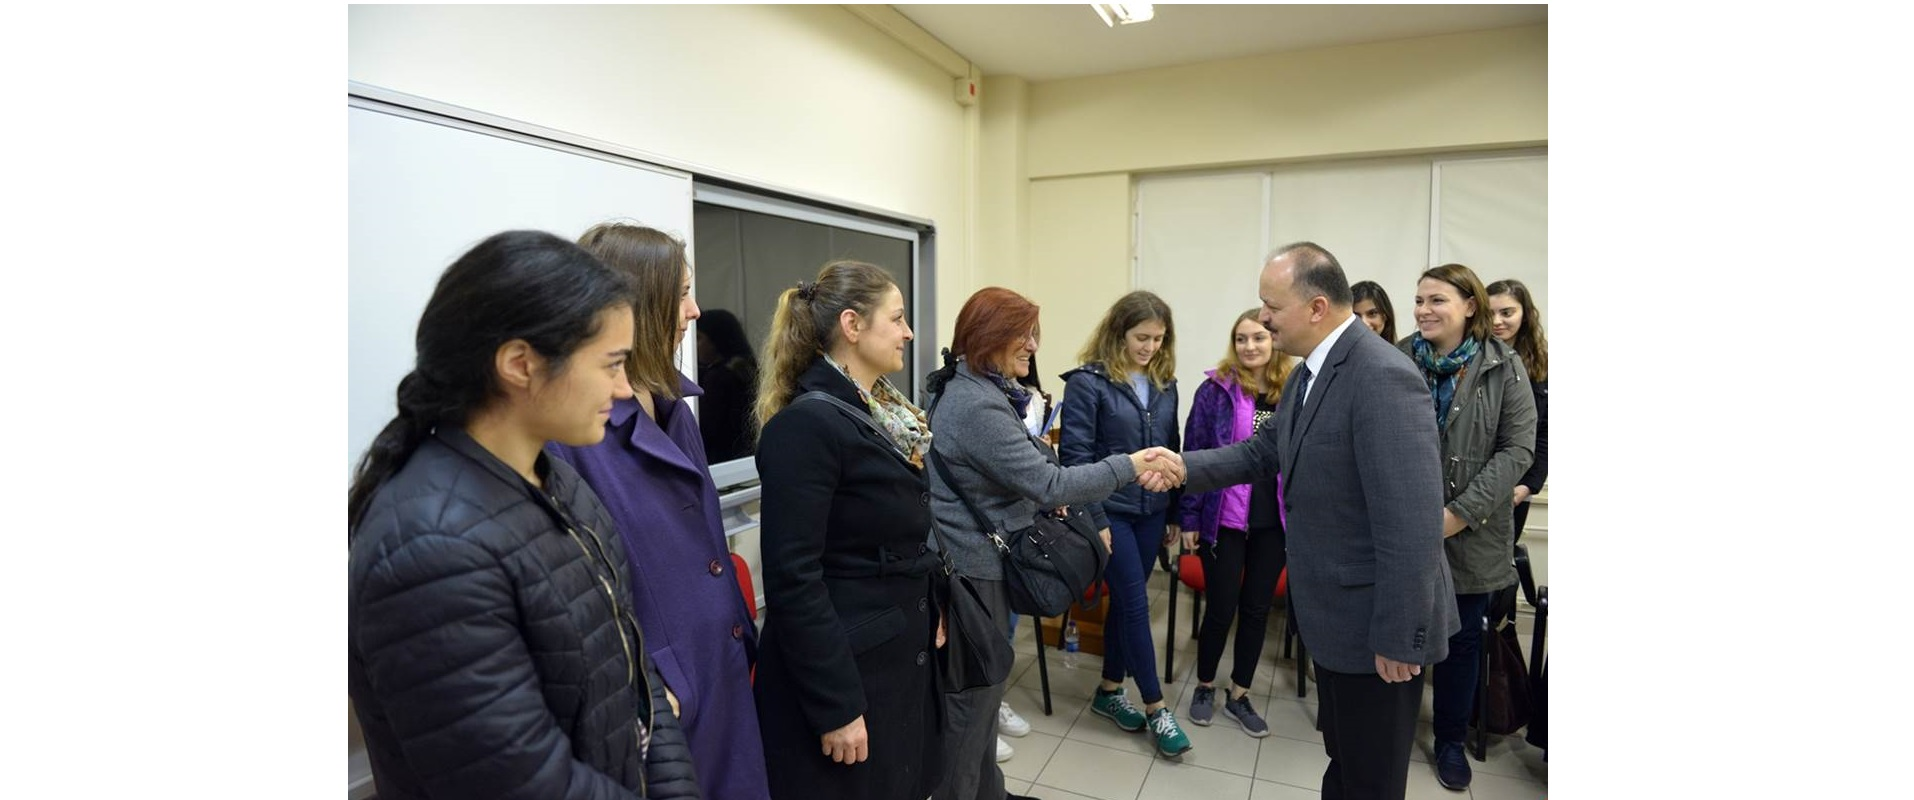 "Maltepe Governor Mr. Dallı Paid Visit to Project ""Students From Secondary School to University All in Together"""